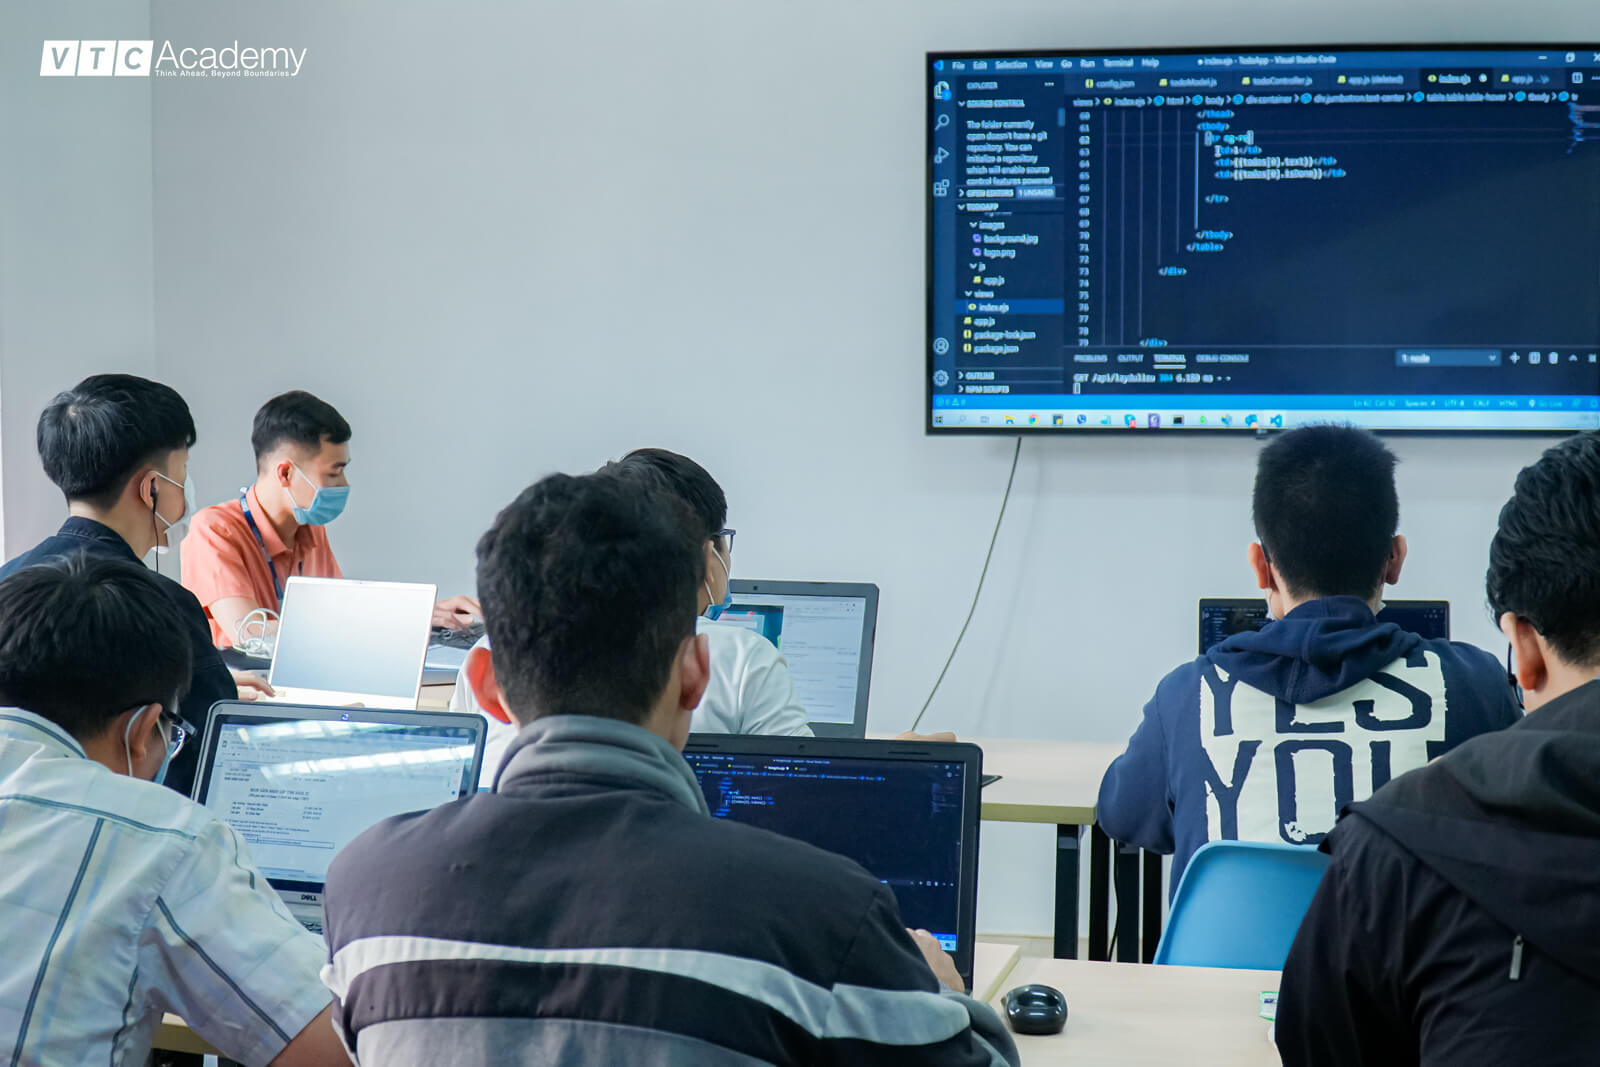 web-full-stack-bootcamp-vtc-academy-3